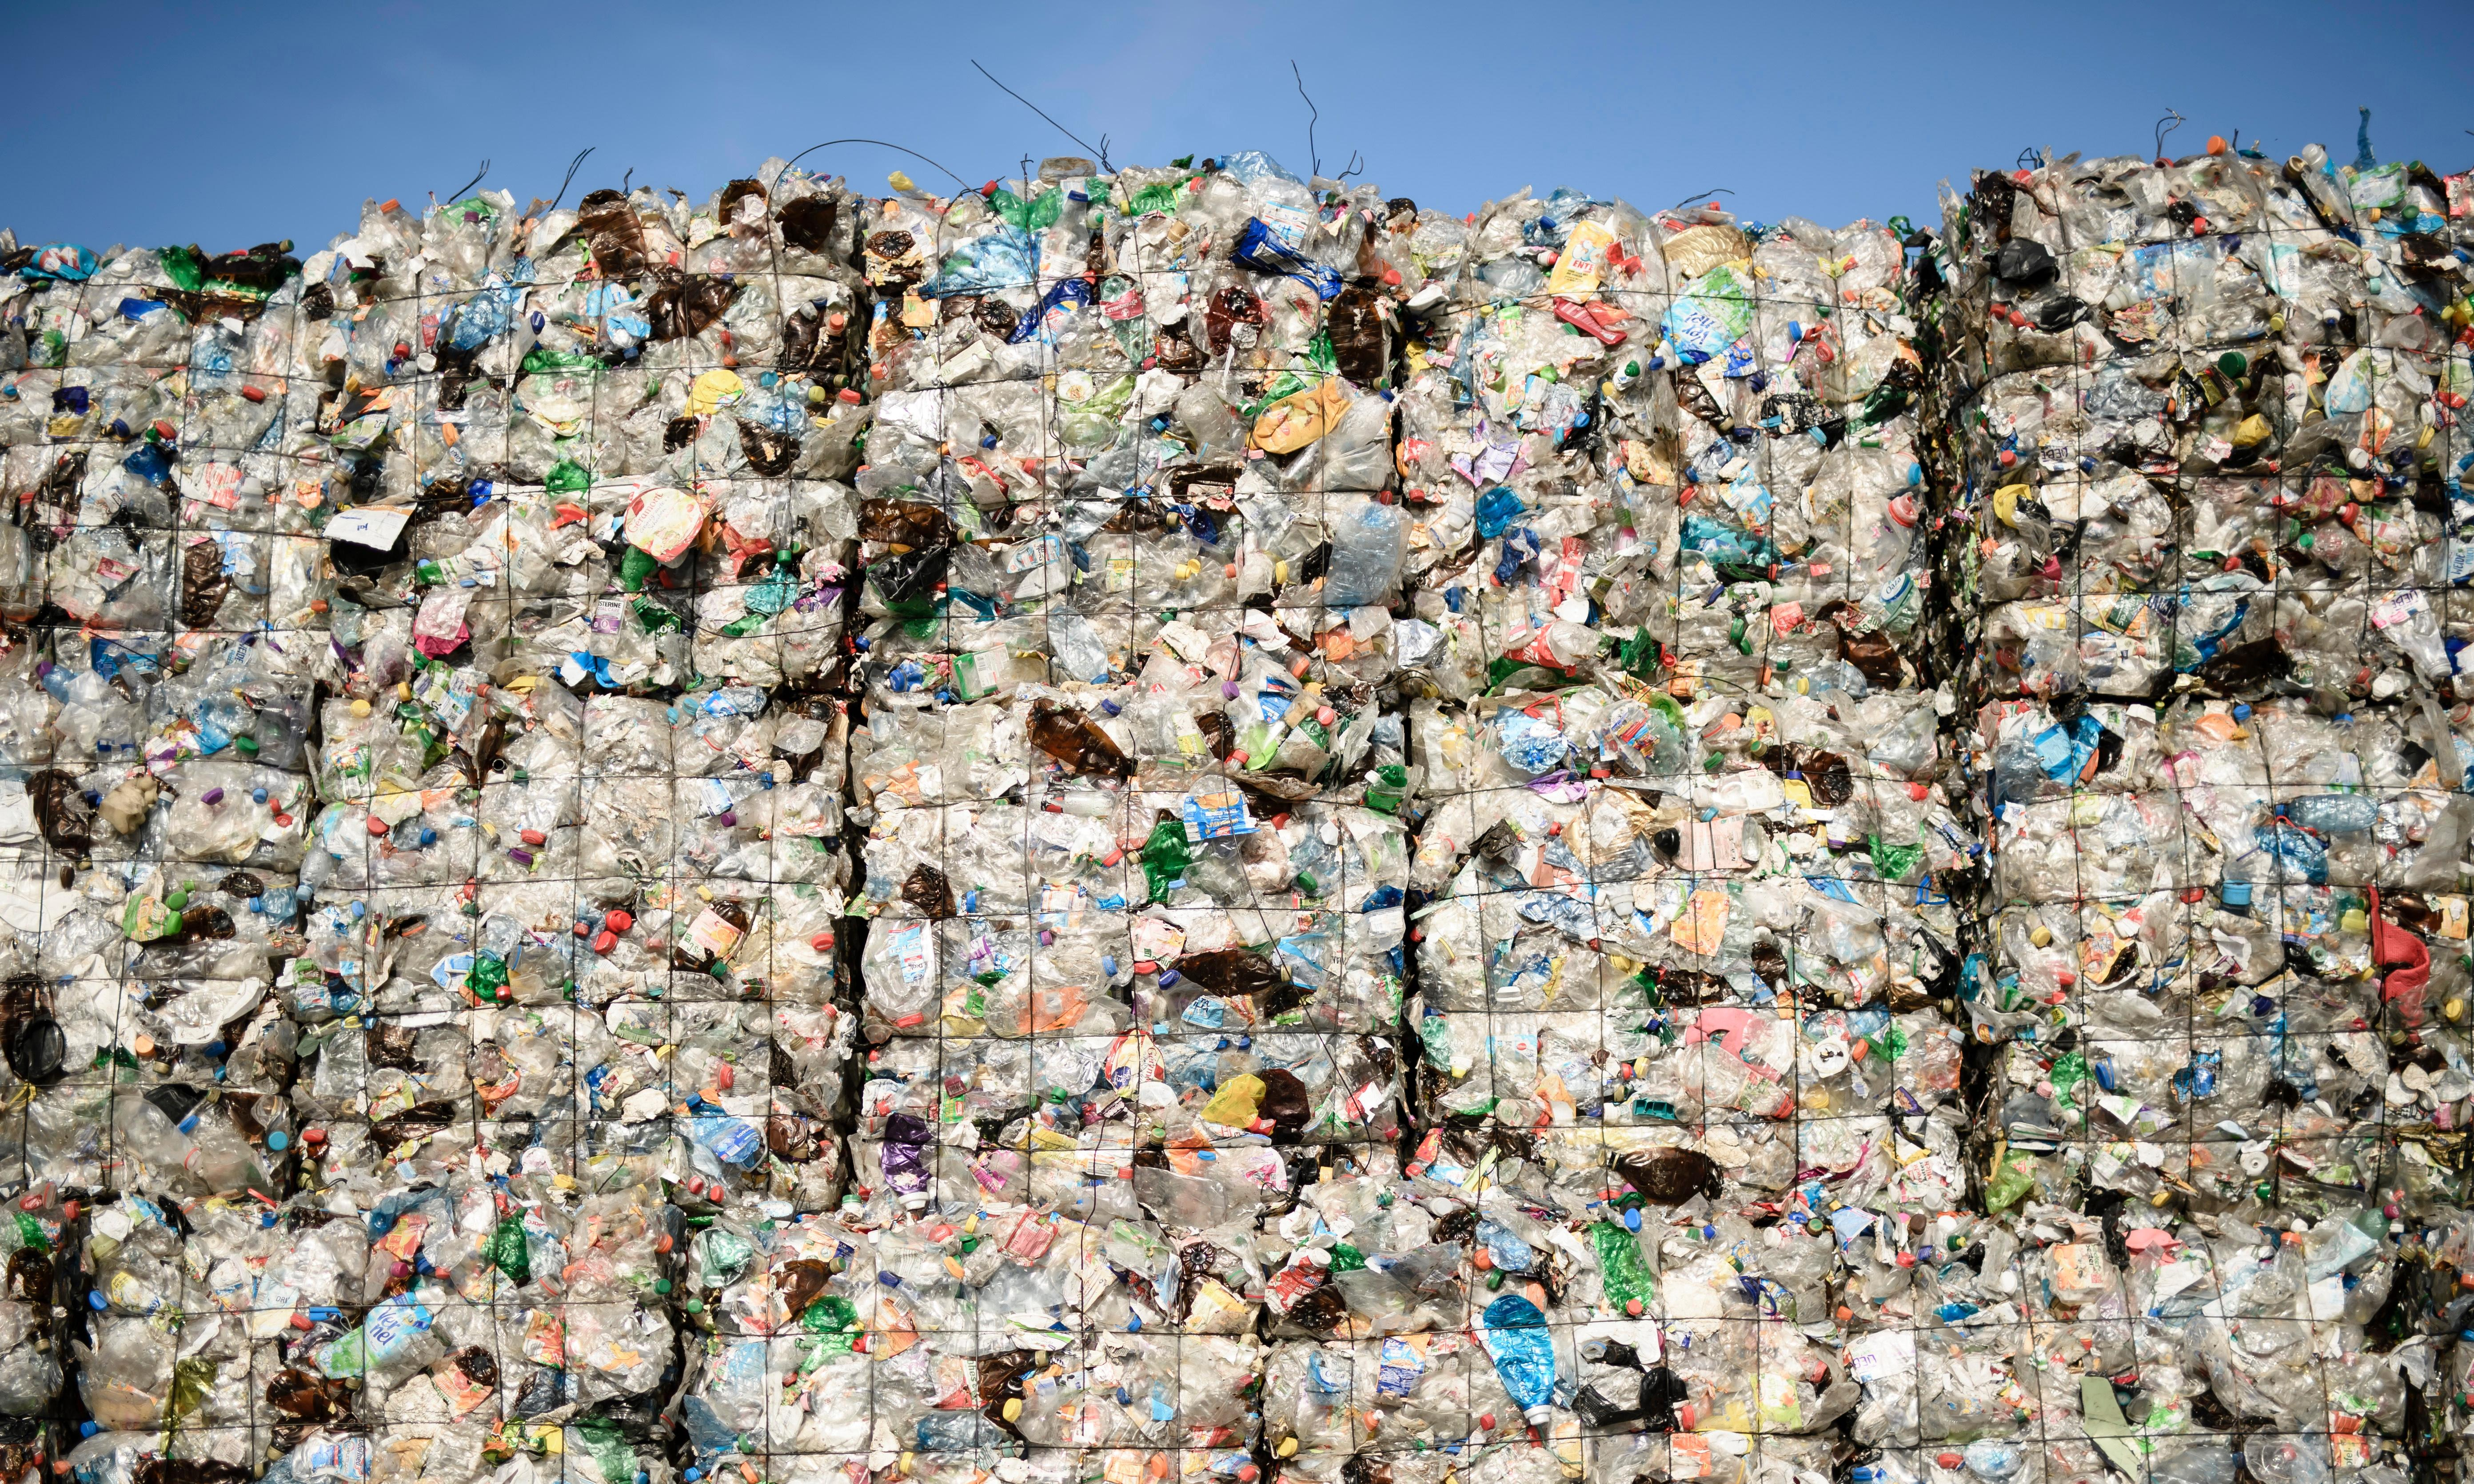 Why the Guardian is taking on America's plastic waste crisis